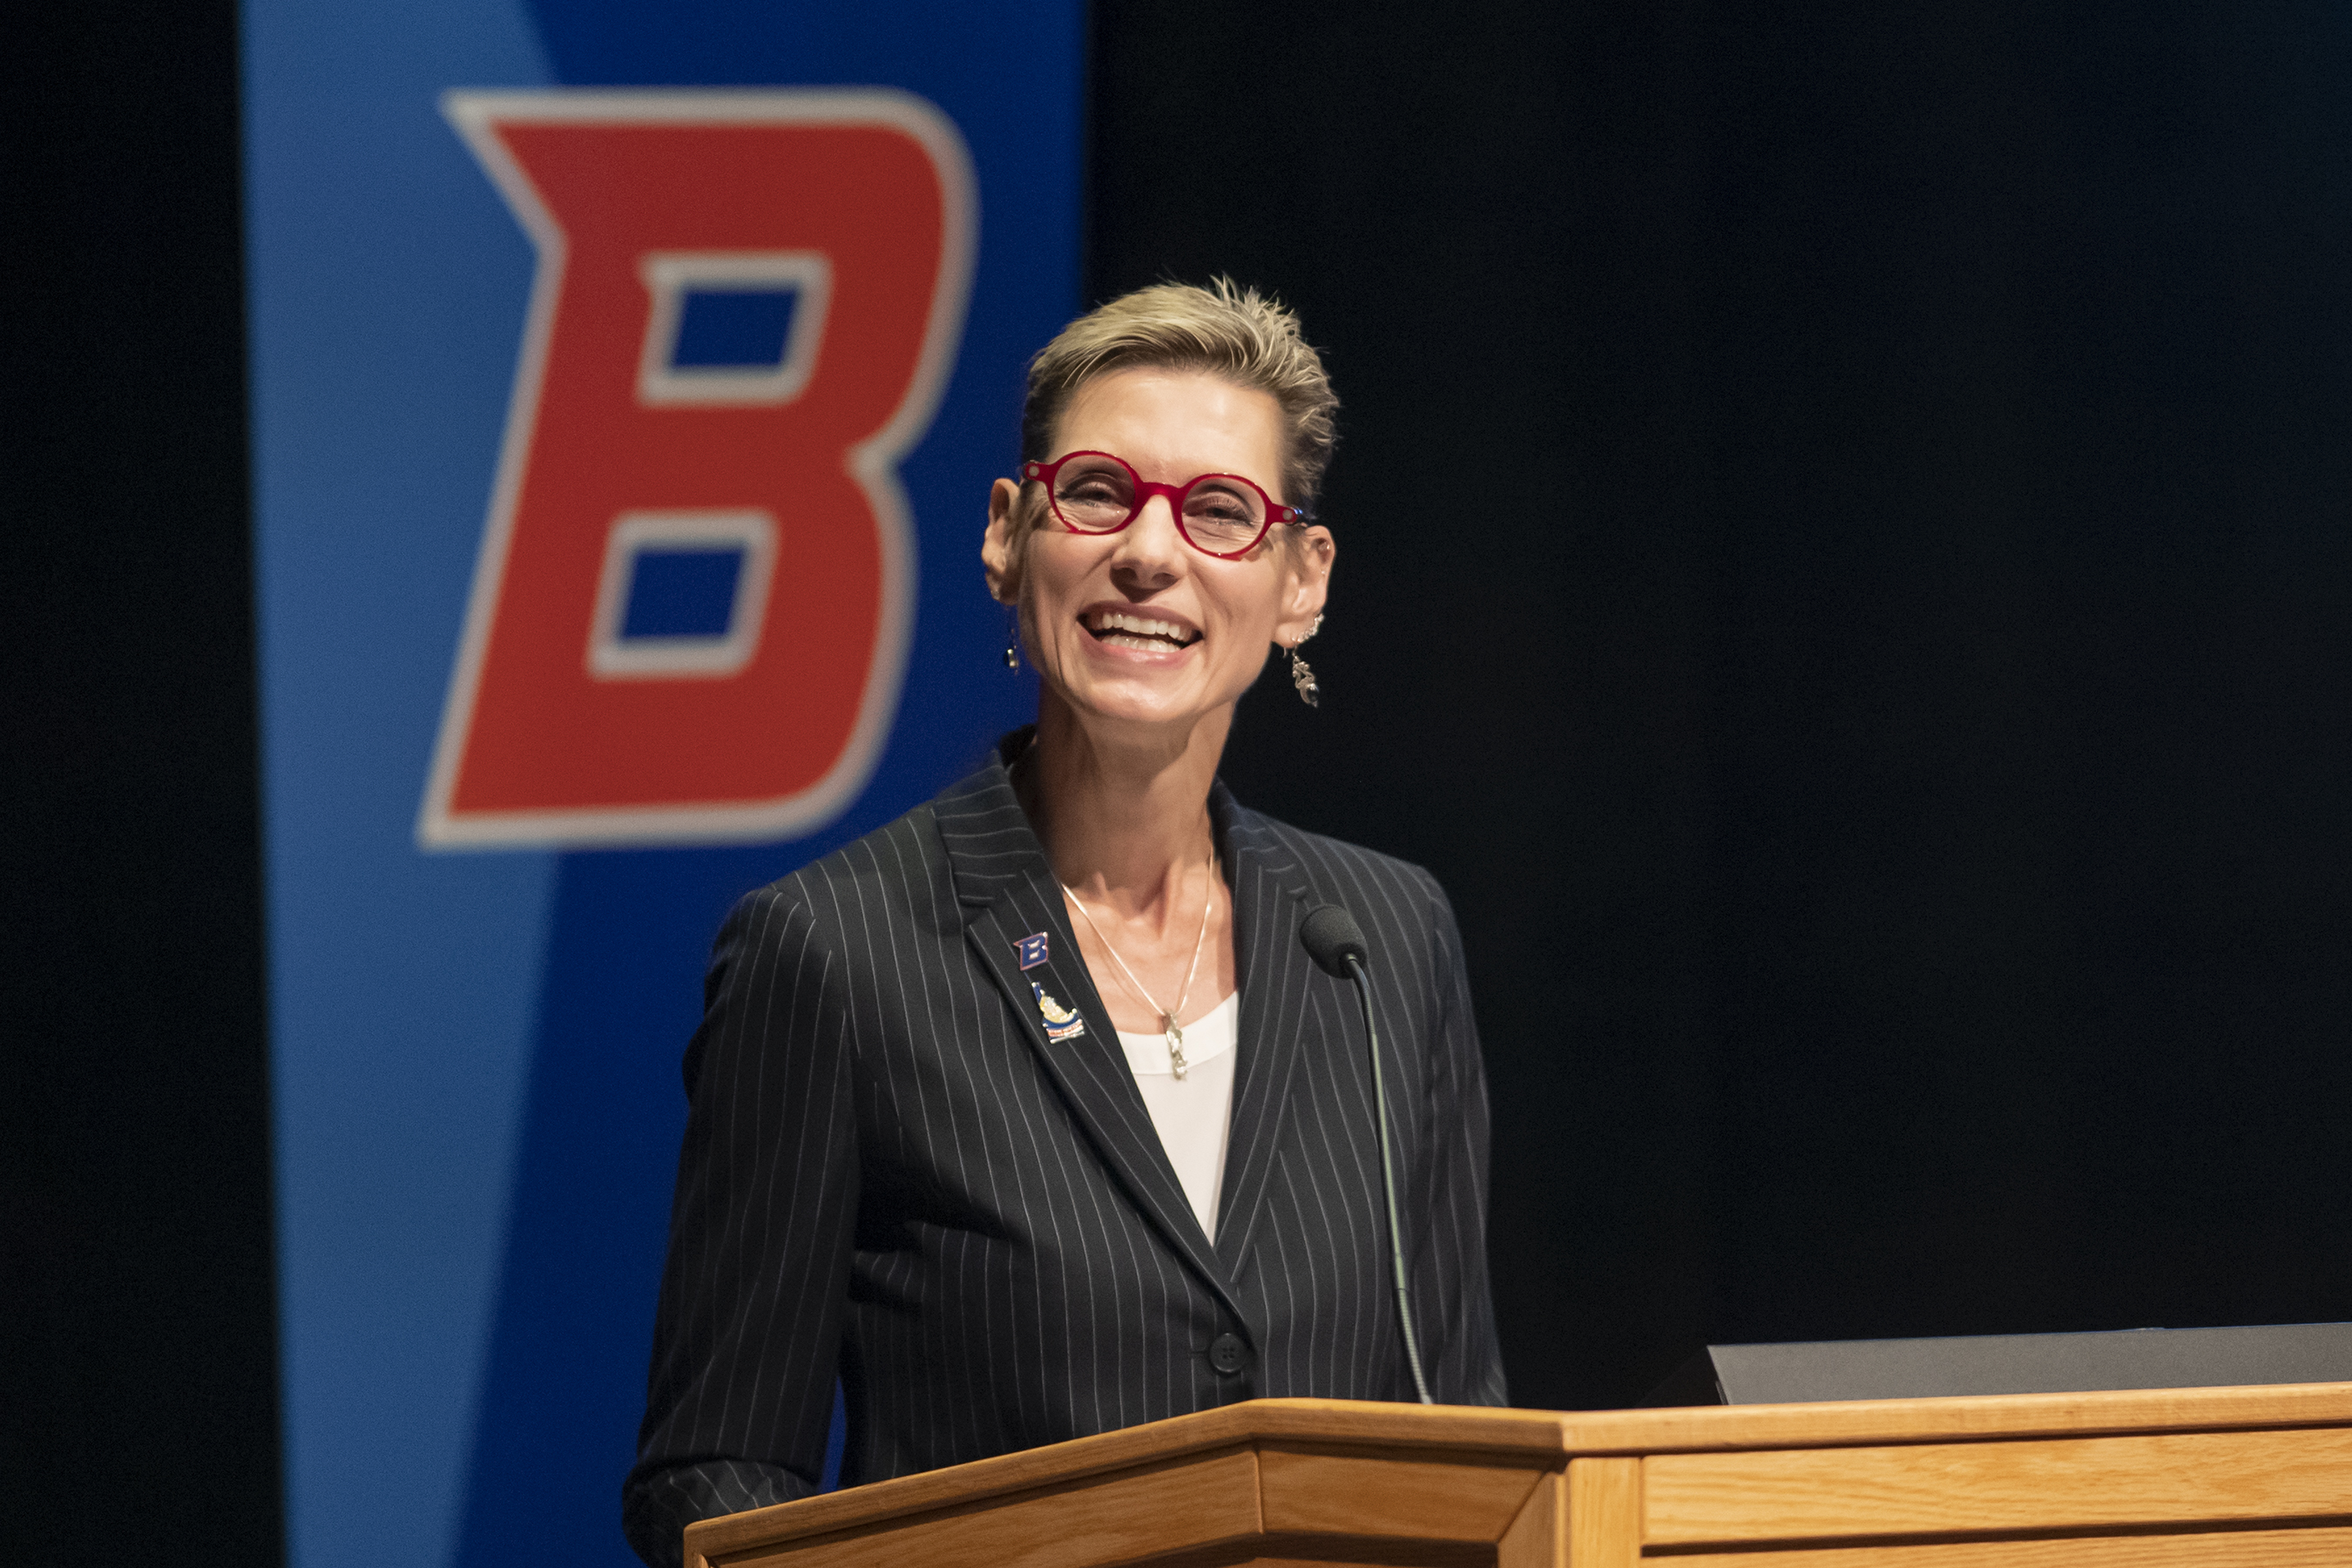 Marlene Tromp at State of the University address